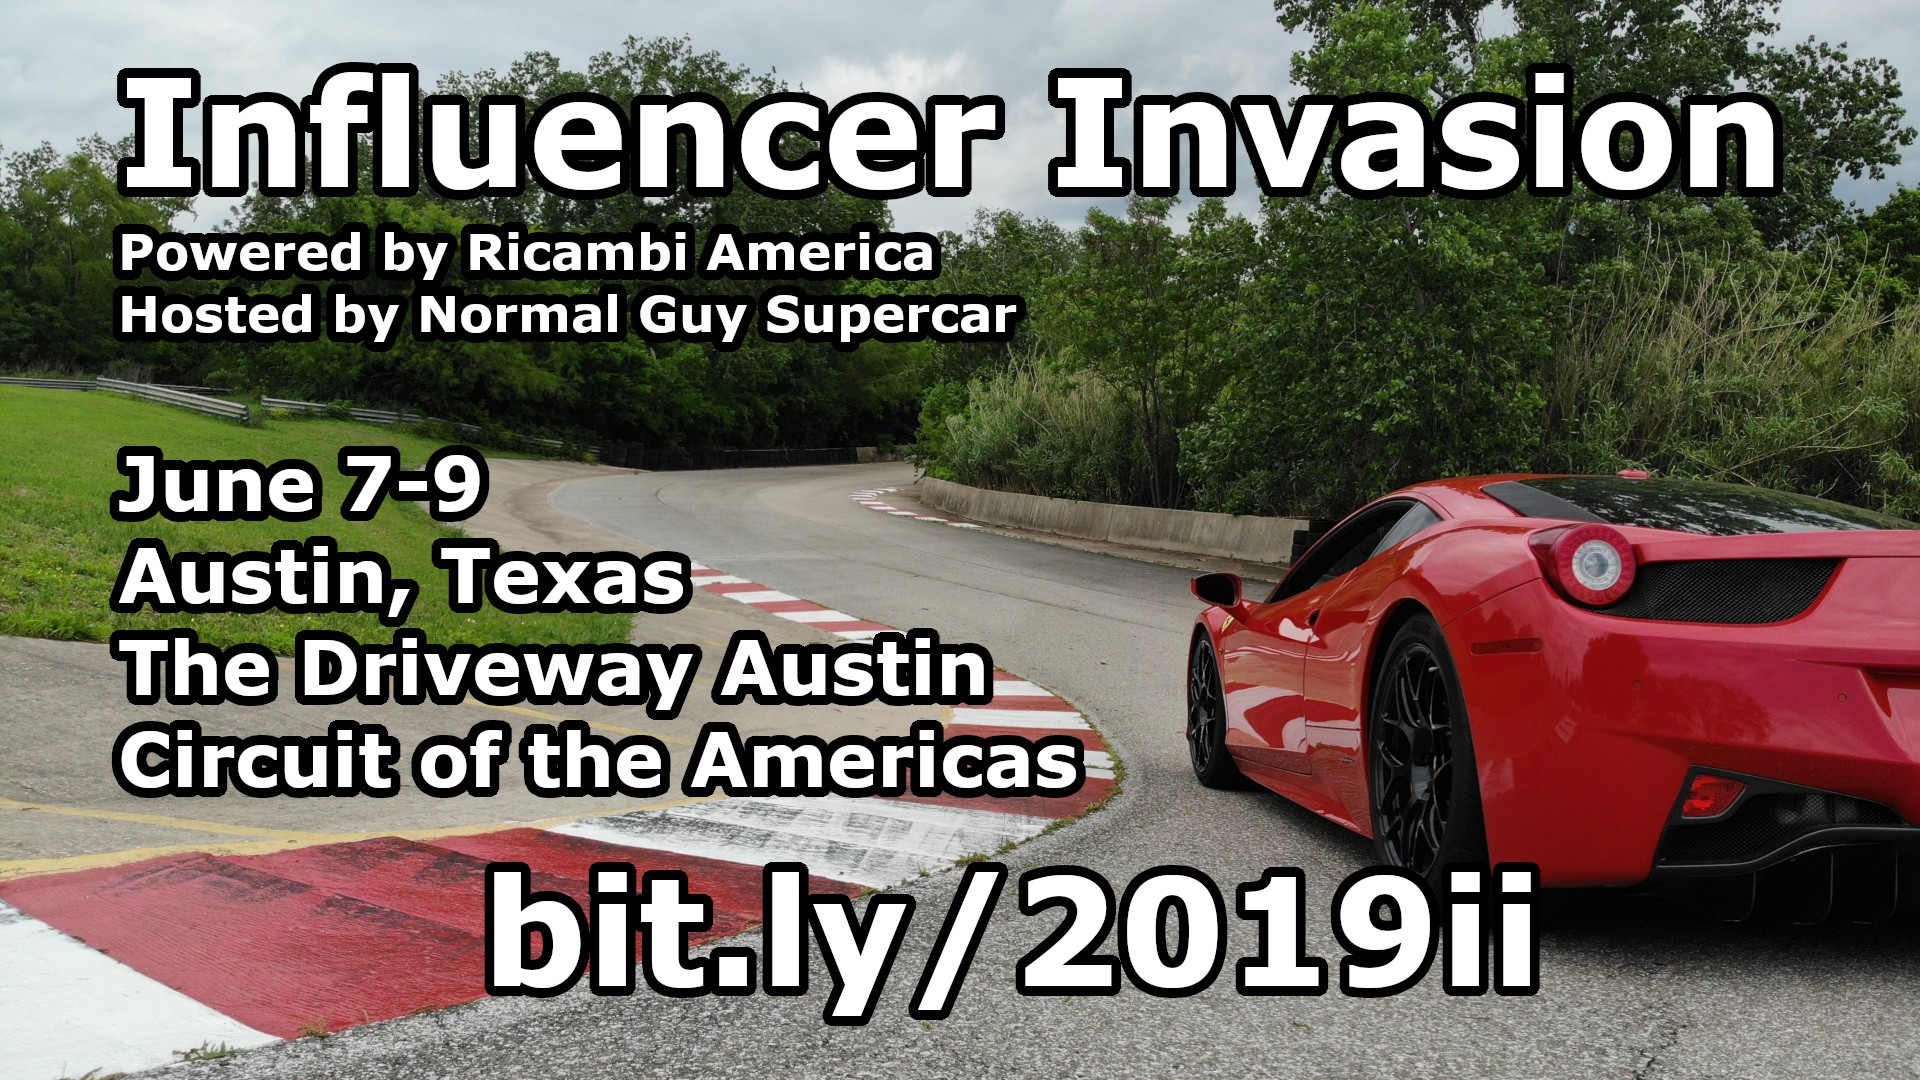 2019 Influencer Invasion | Normal Guy Supercar